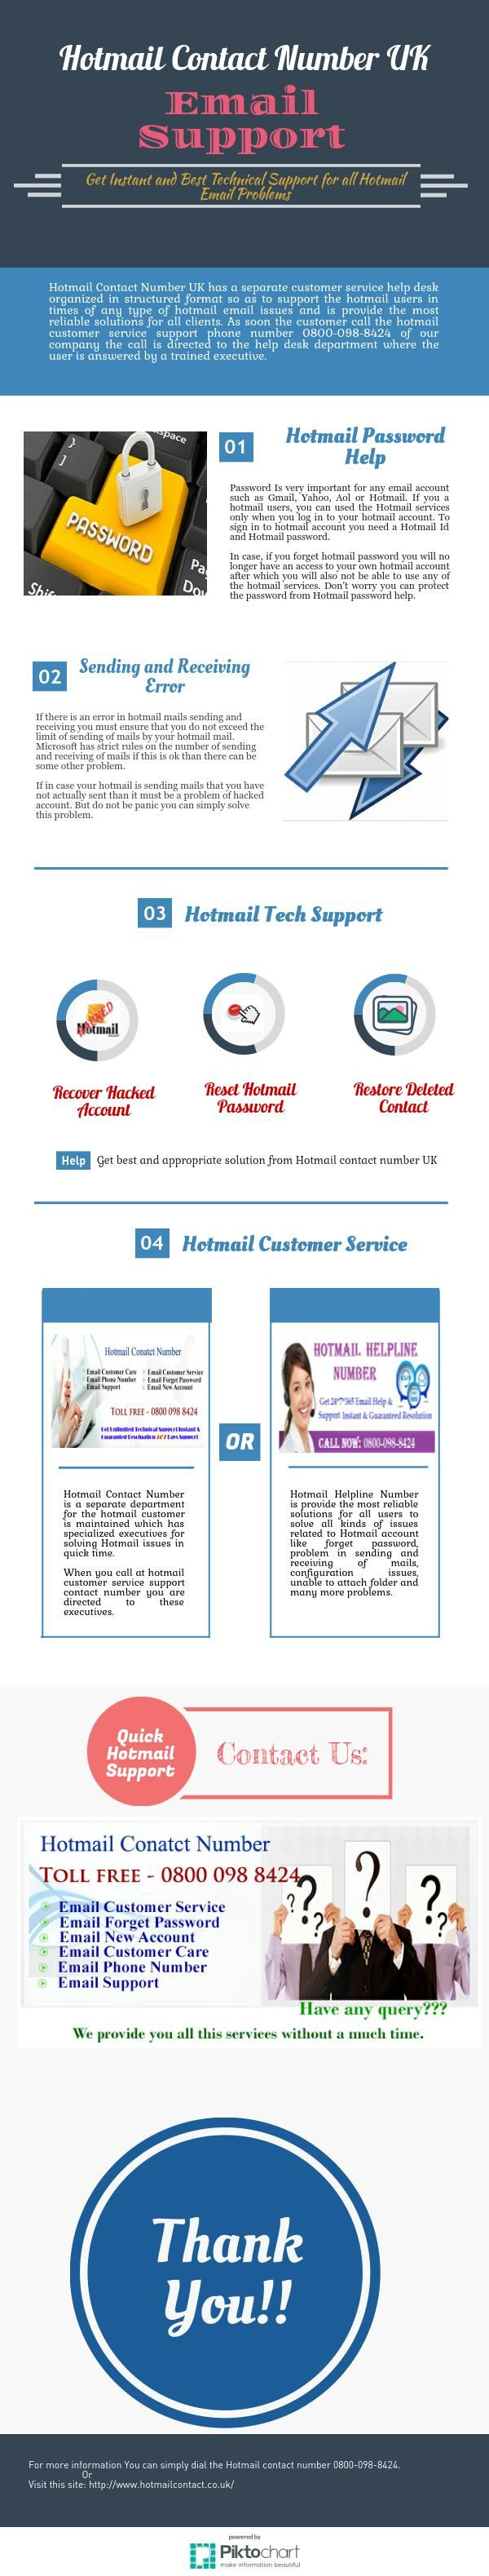 Watch the infographic for instant support for hotmail email problems which is solve your issue in fast time.